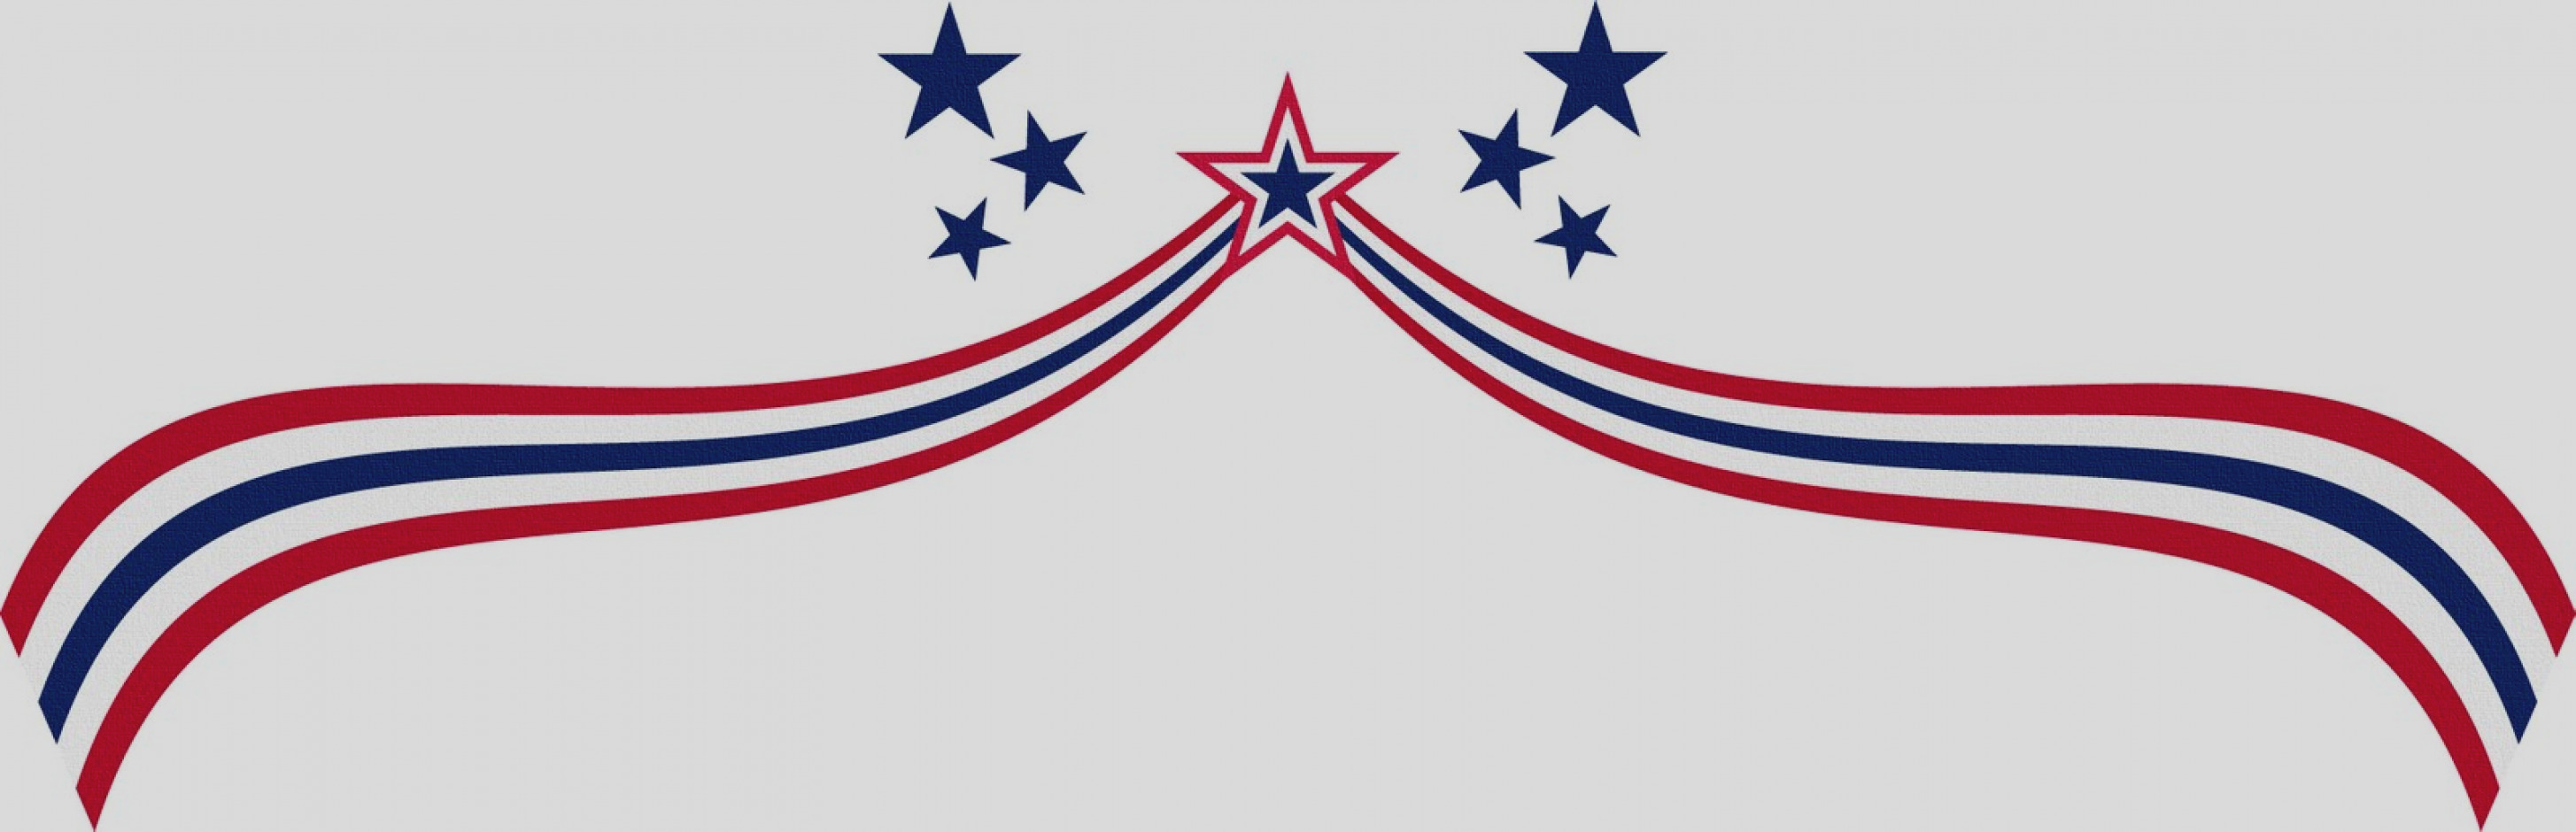 2909x940 Amazing Of Fourth July Clip Art Clipart